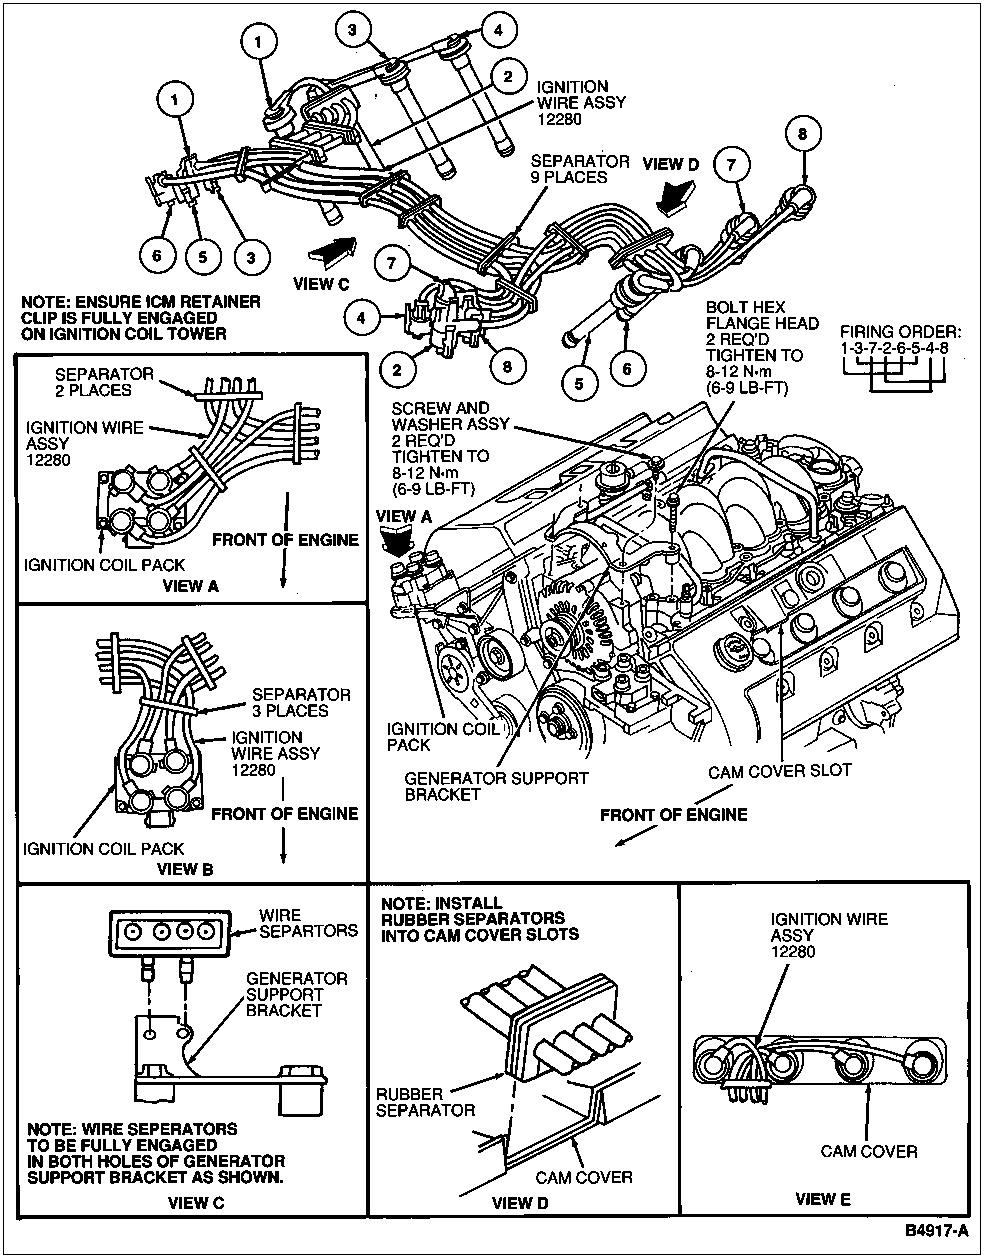 2003 Lincoln Town Car Engine Diagram - Data Wiring Diagram Update